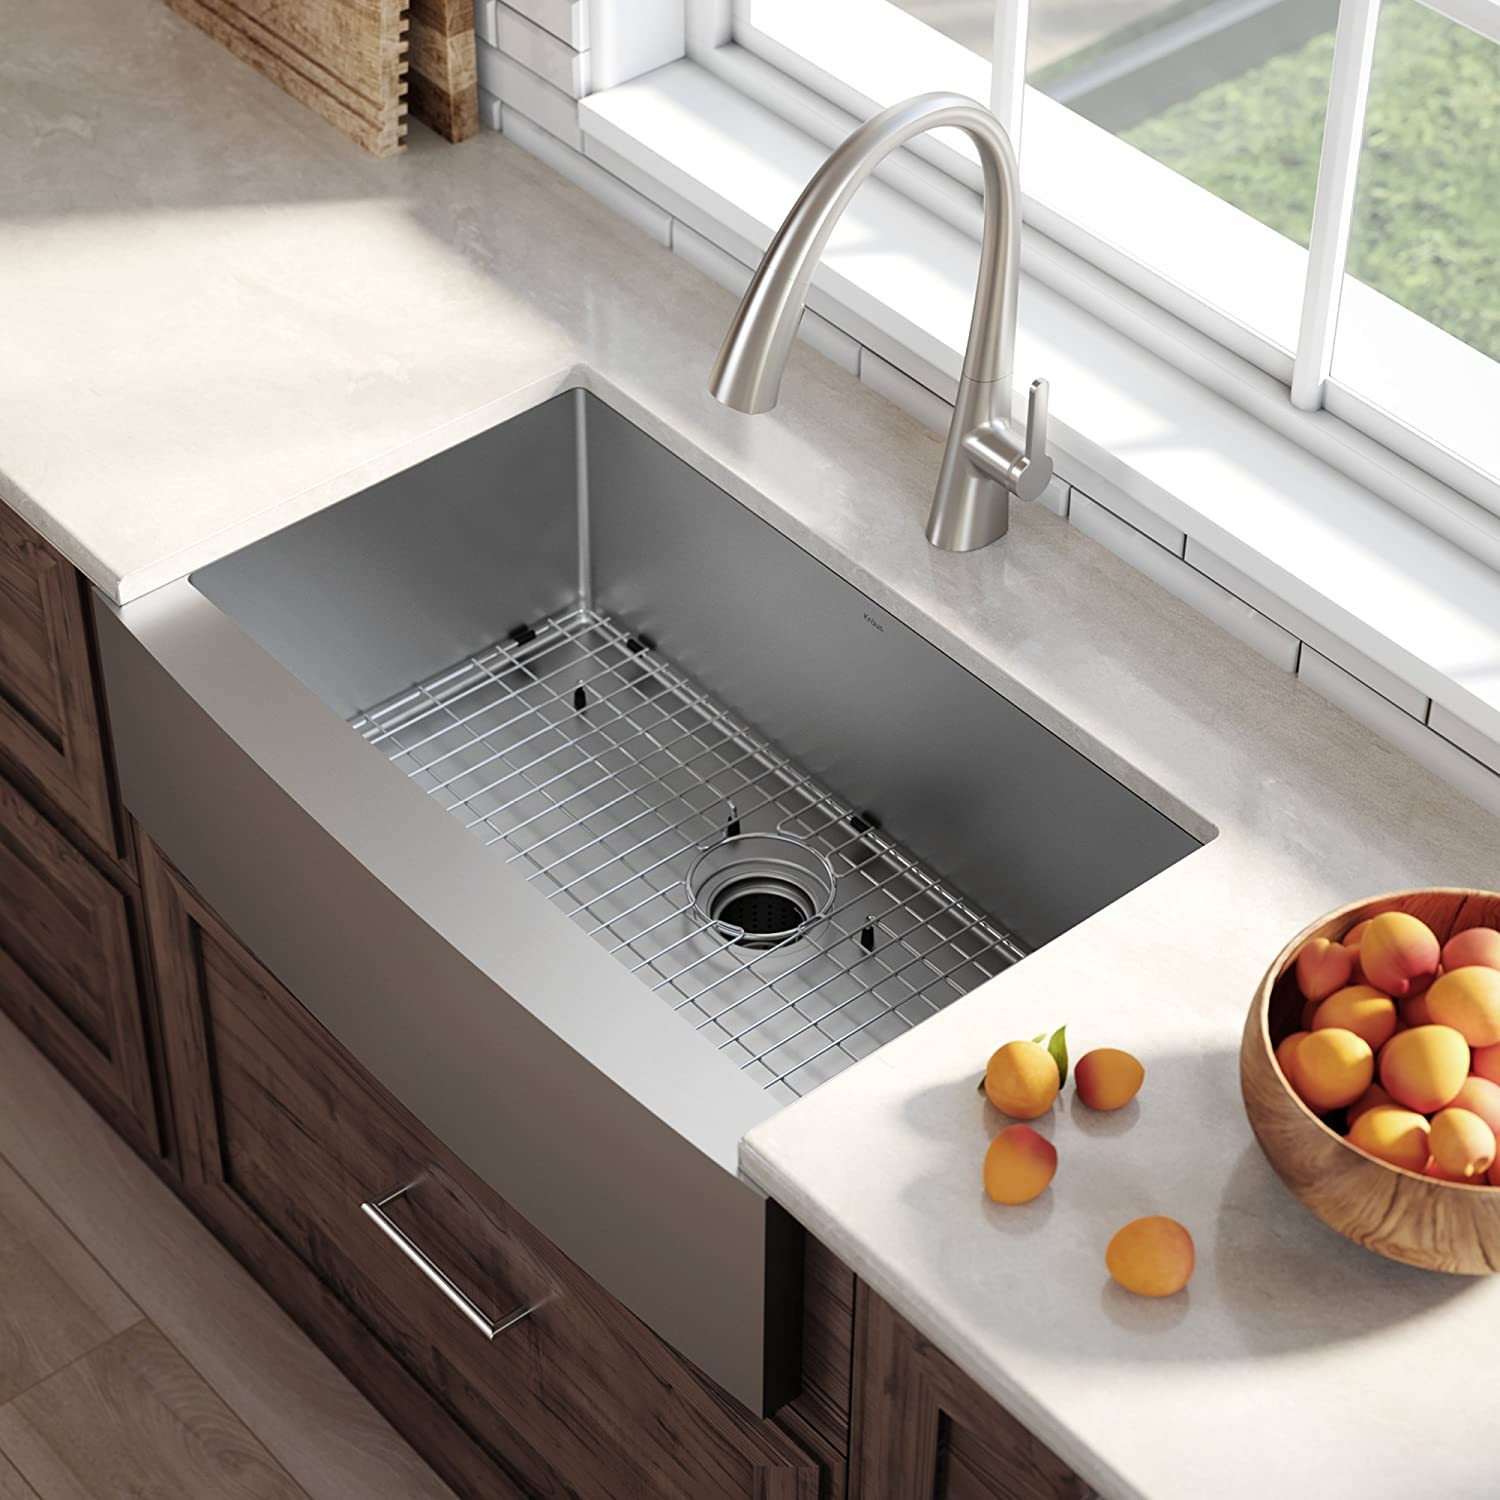 Best Farmhouse Sink 2019 Uncle Paul S List Of Sinks That